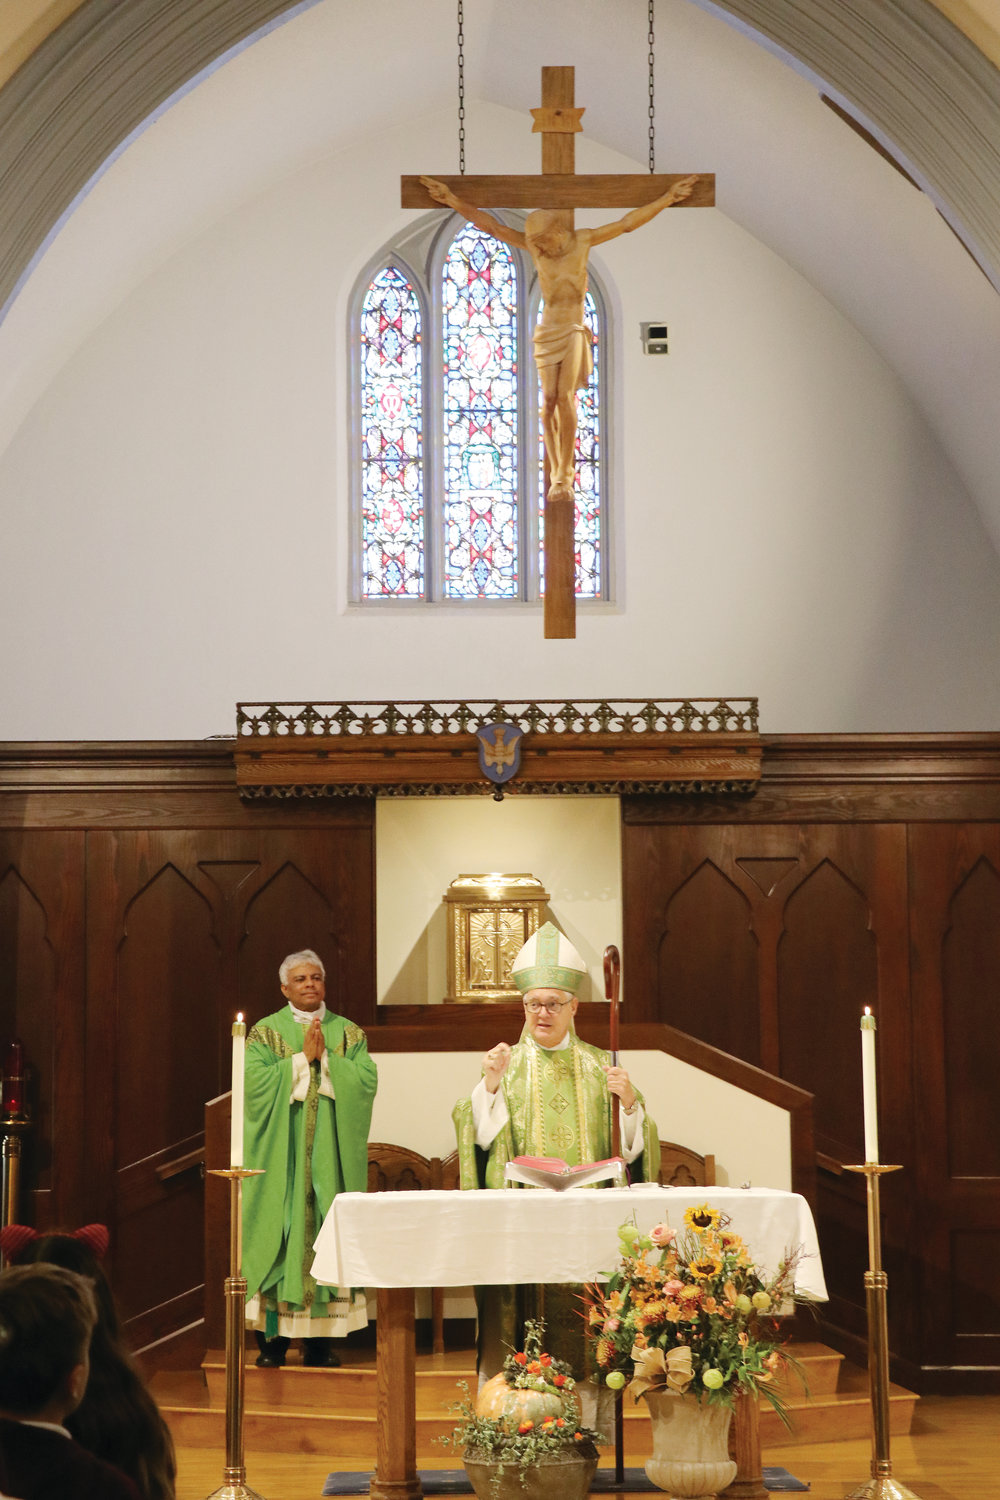 Father TJ Varghese concelebrates Mass with Bishop Tobin.